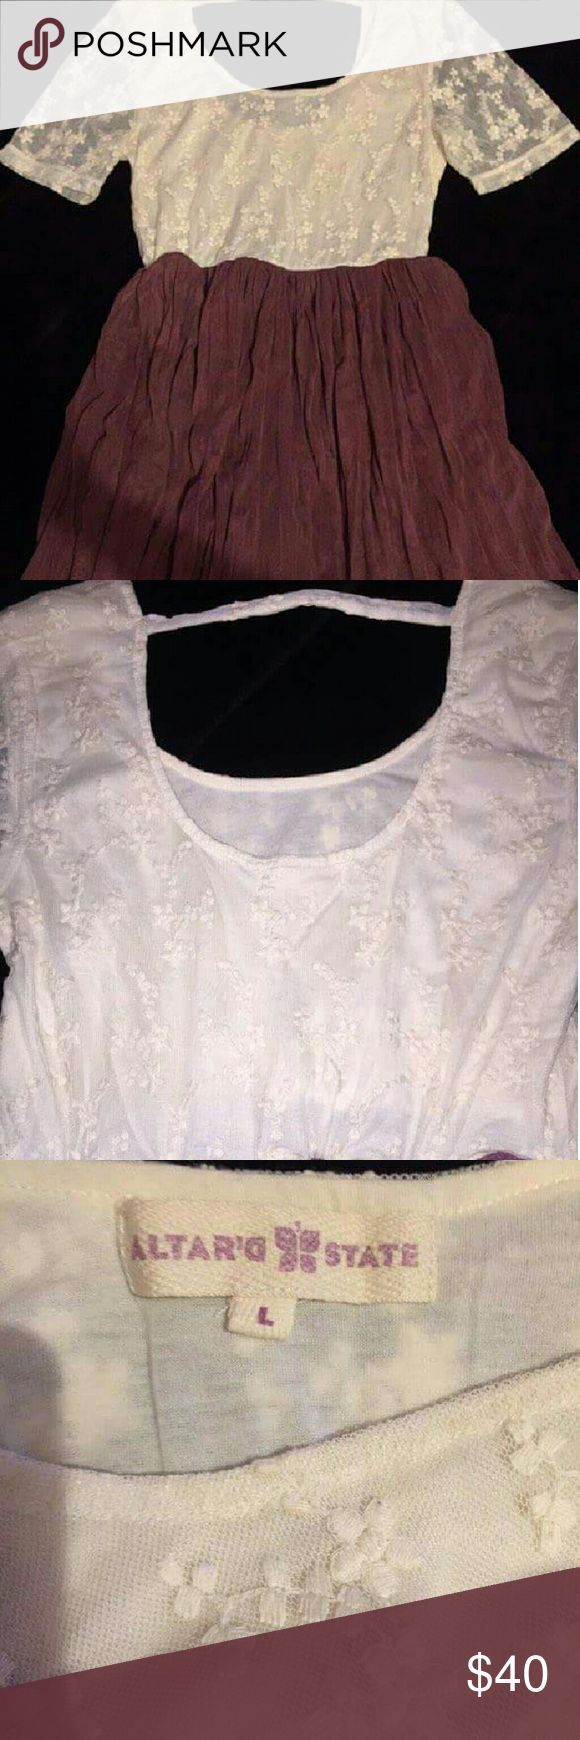 Altar'd state mid length dress Worn a couple of times, in great condition and still looks brand new! Altar'd State Dresses Midi